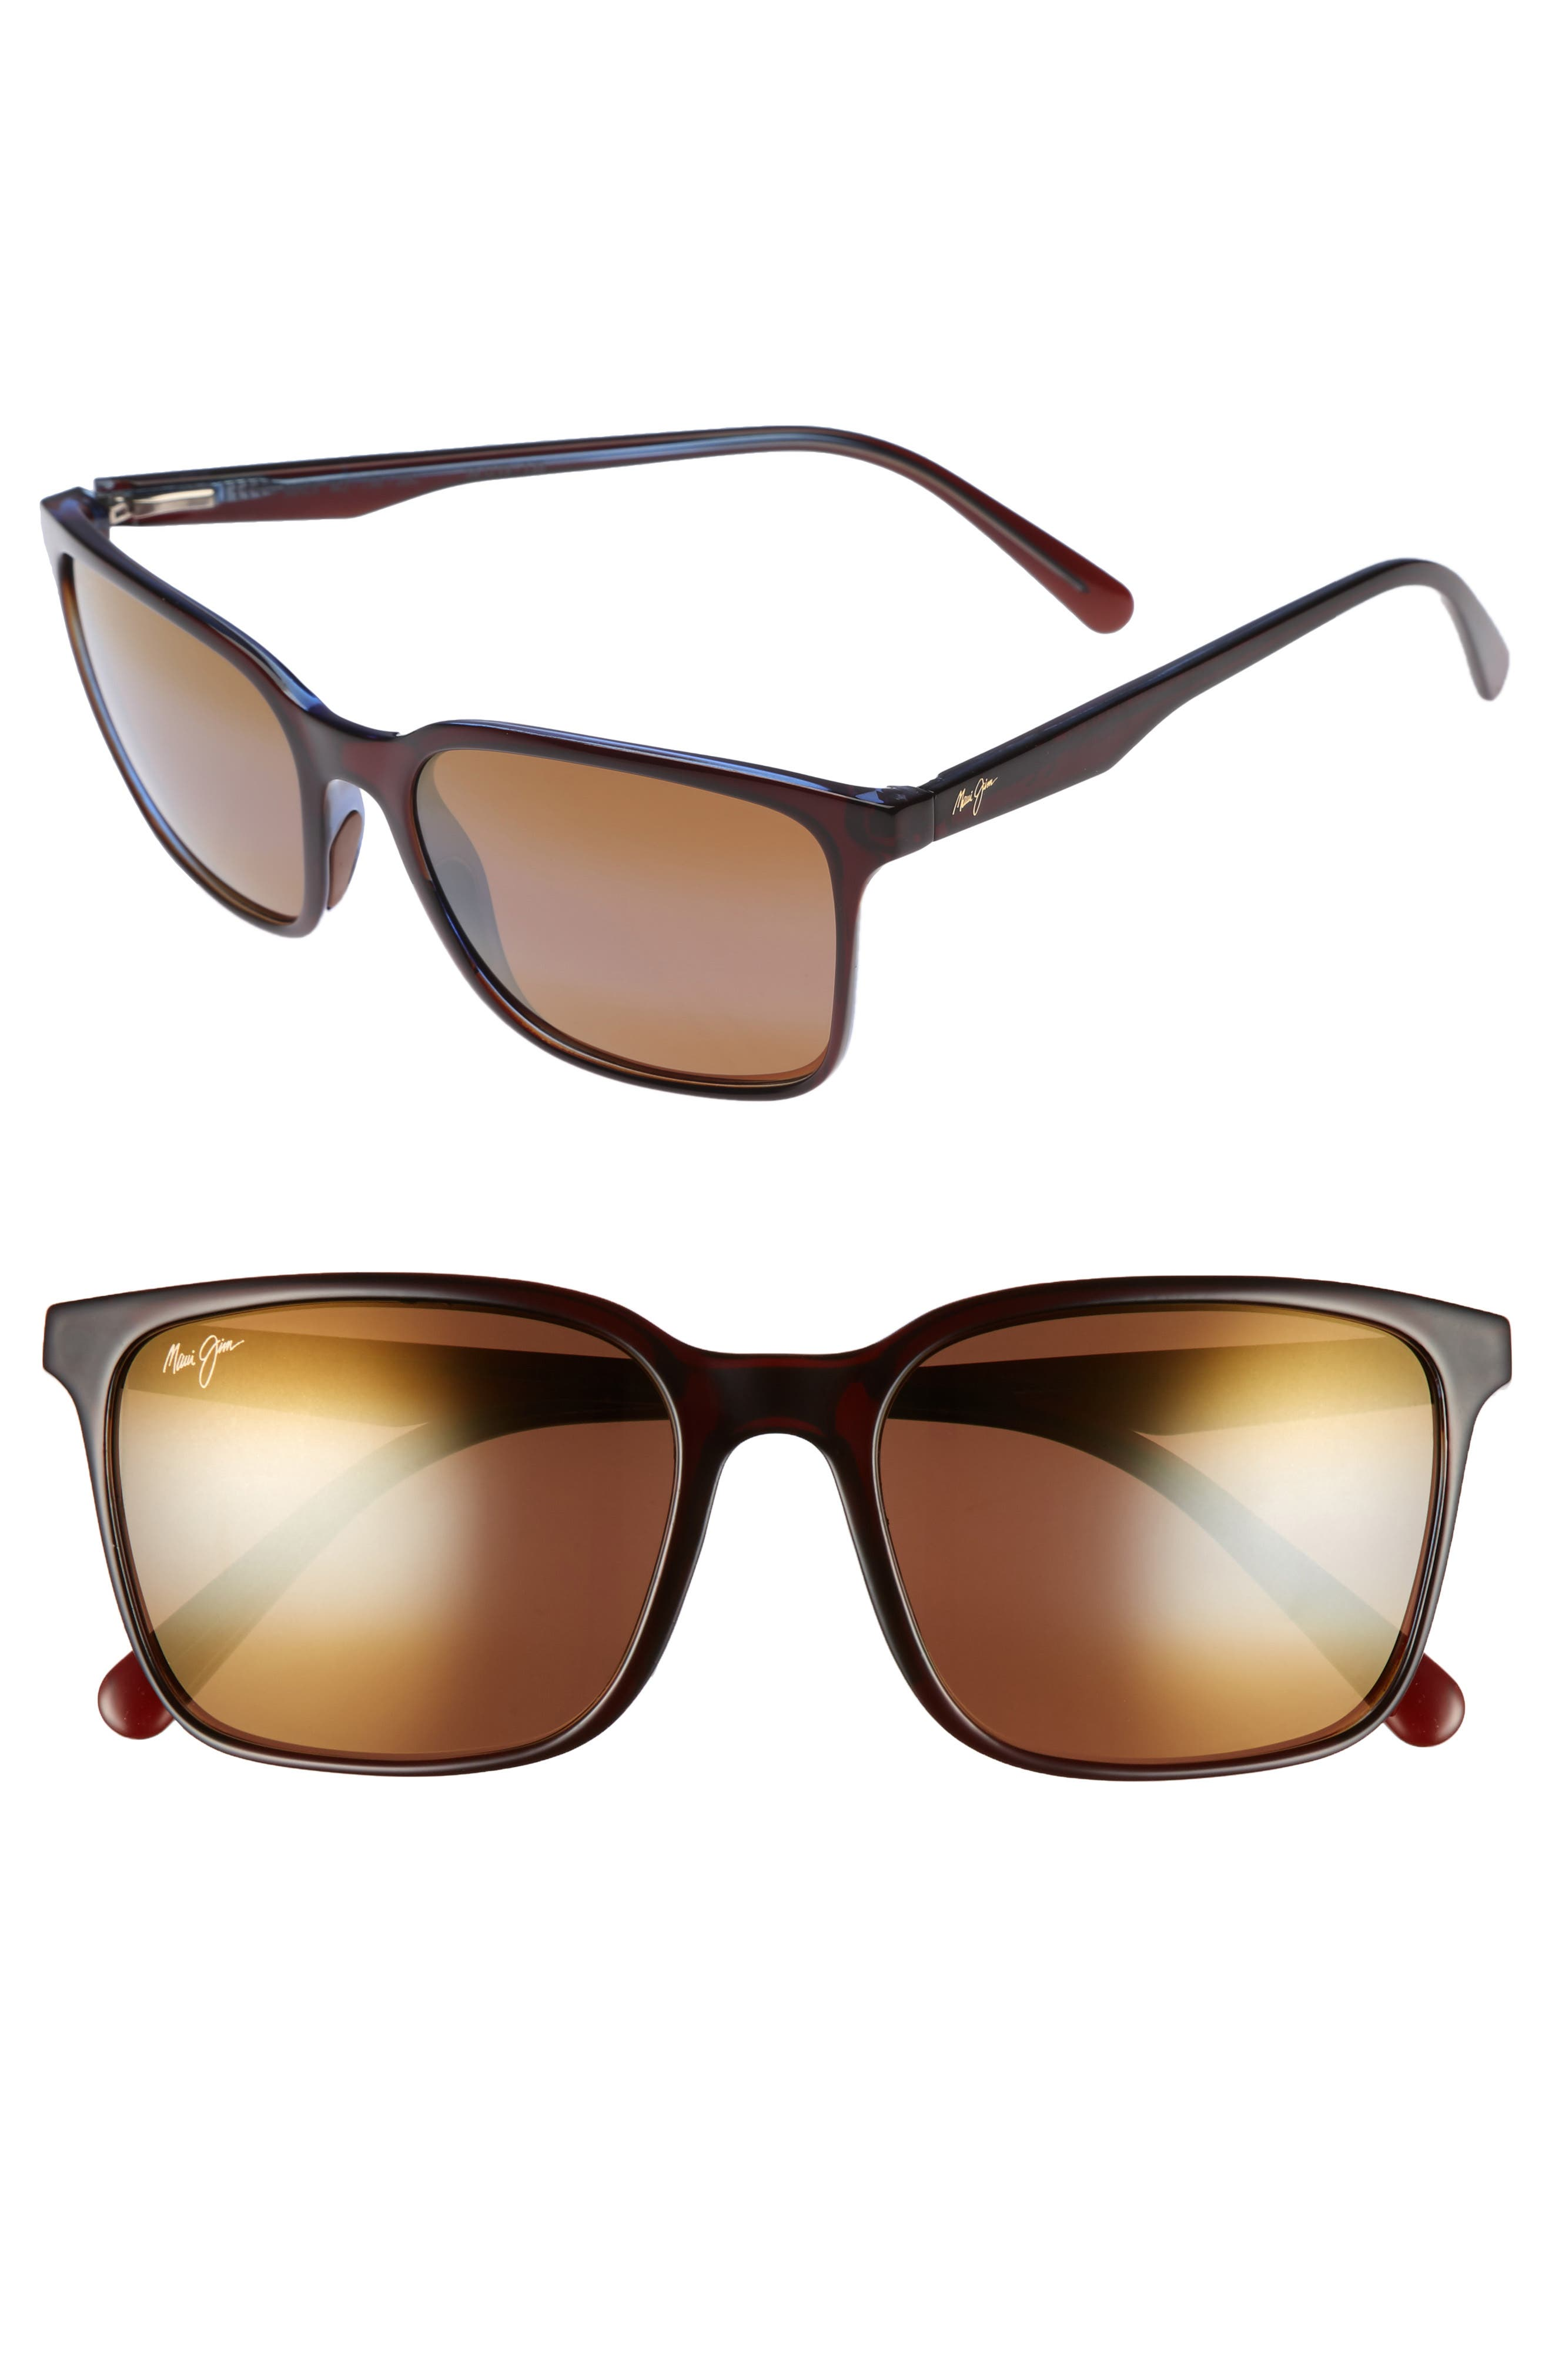 Wild Coast 56mm Polarized Sunglasses,                             Main thumbnail 1, color,                             ROOT BEER BLUE/ BRONZE